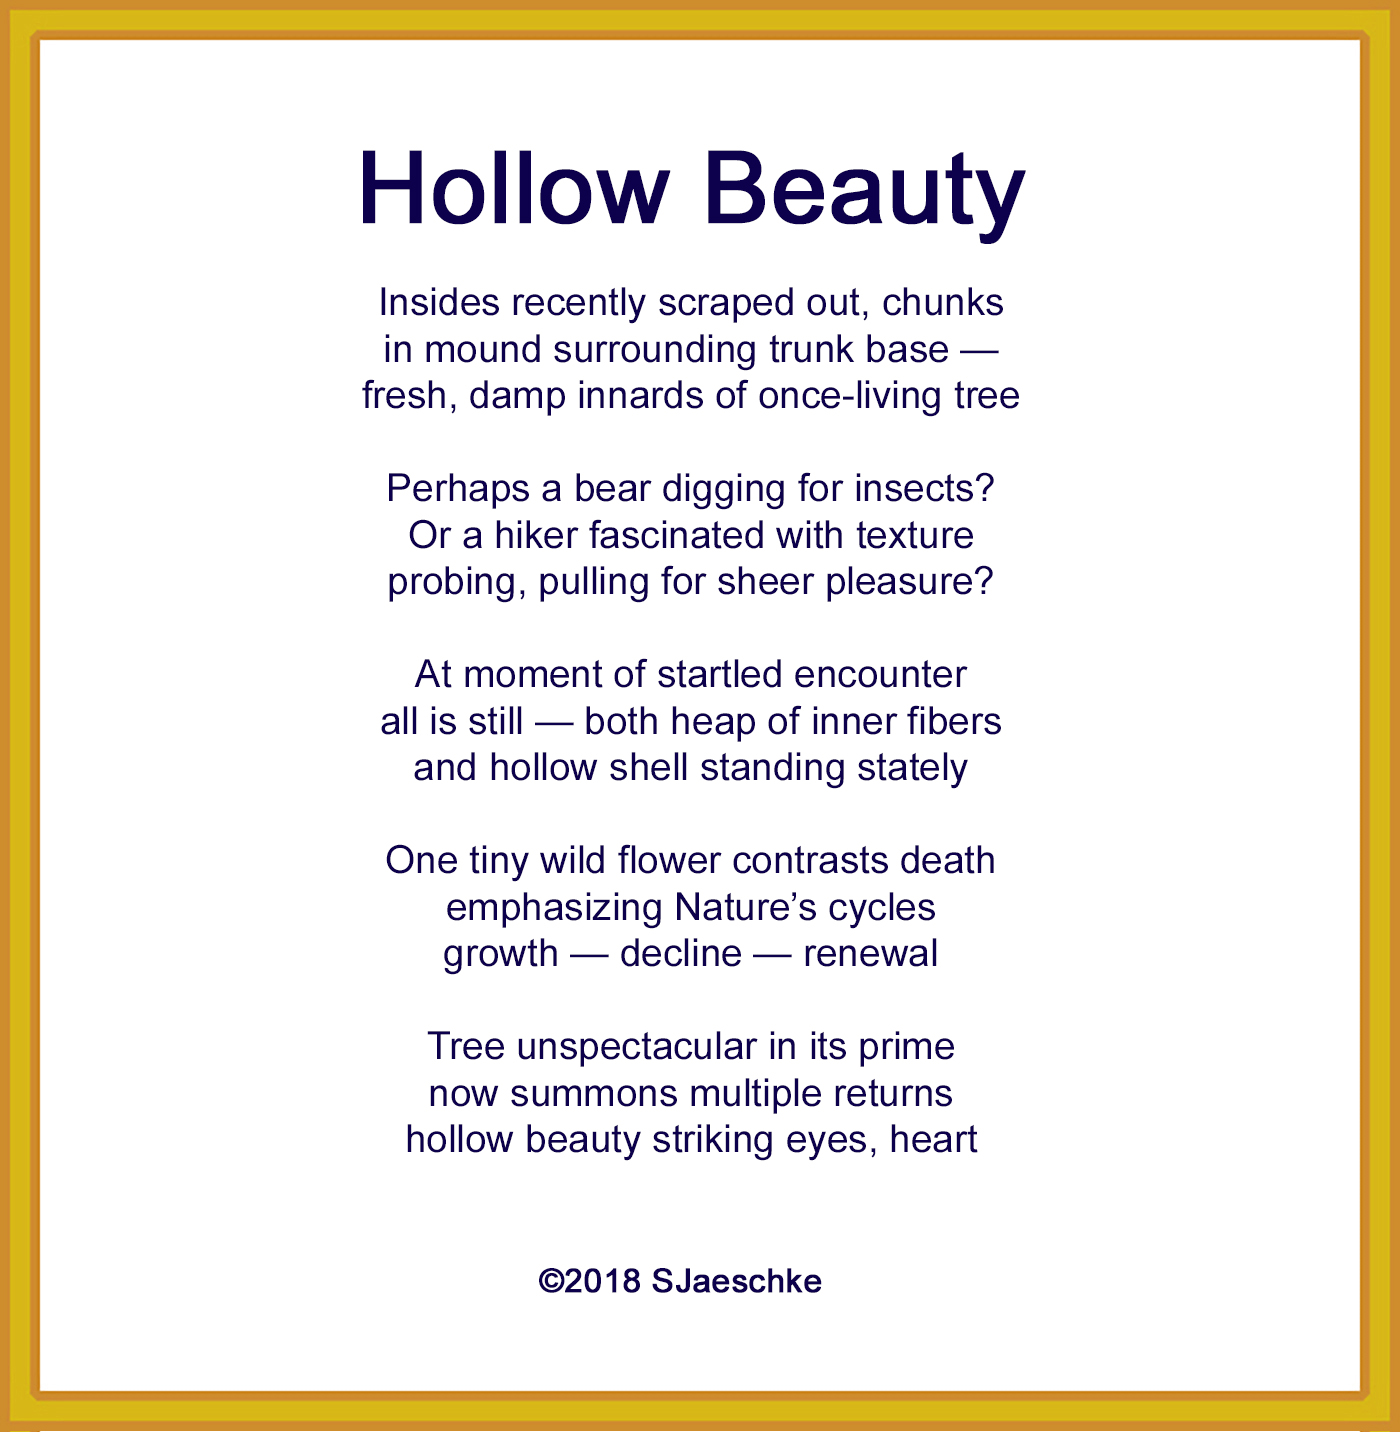 Post_2018-11-04_Poem_HollowBeauty